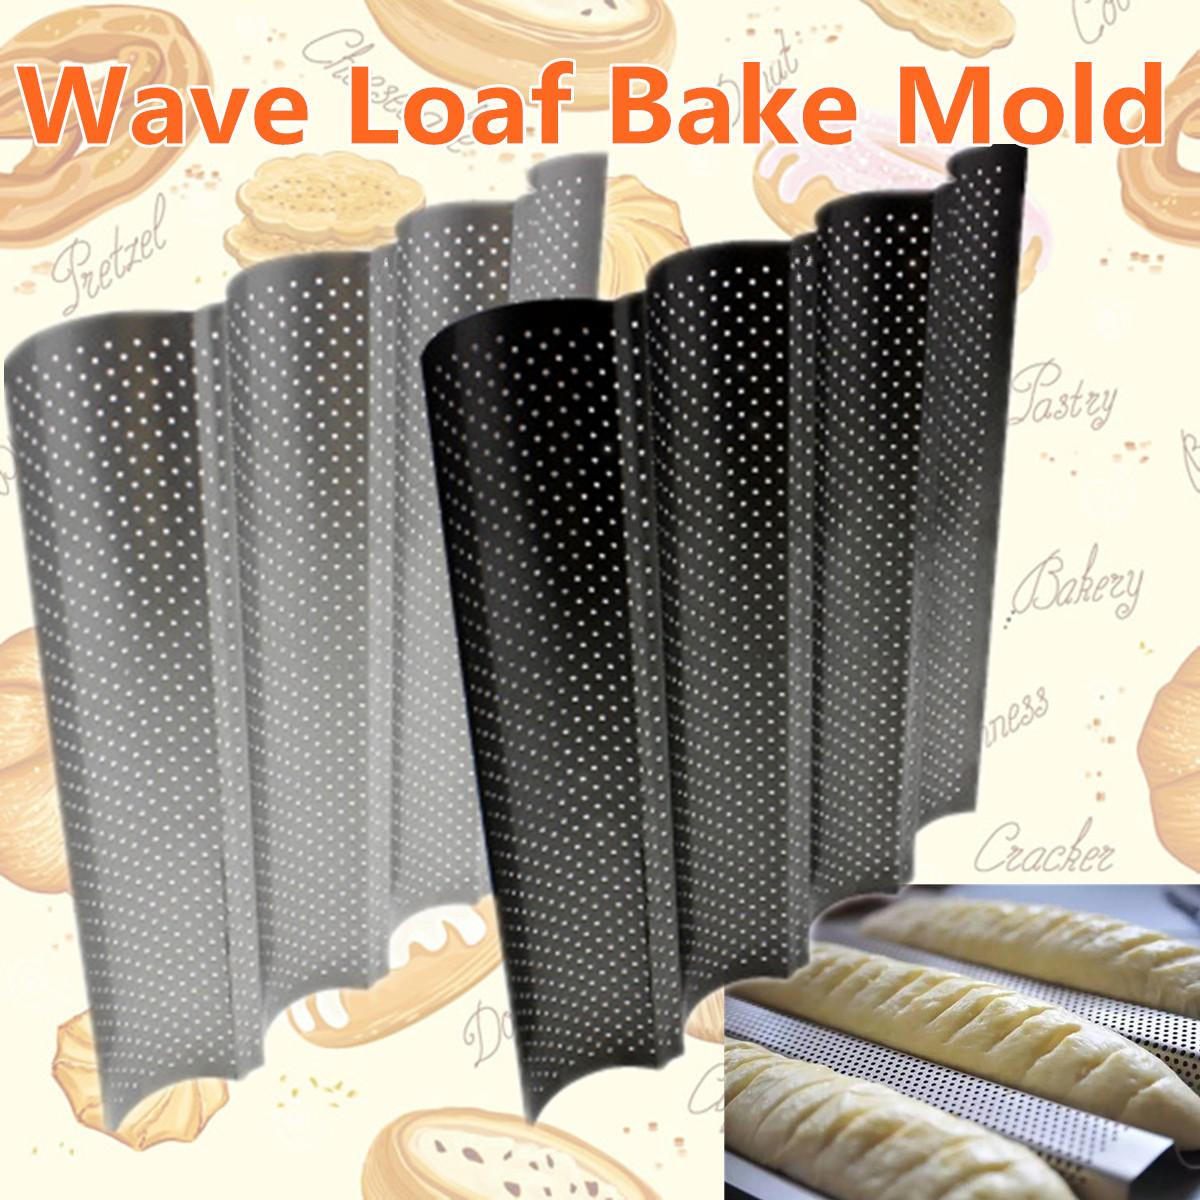 4 Gutters Non-stick Perforated Baguette Pan French Bread Pan Wave Loaf Bake Bakeware Mould Kitchen Appliance Parts